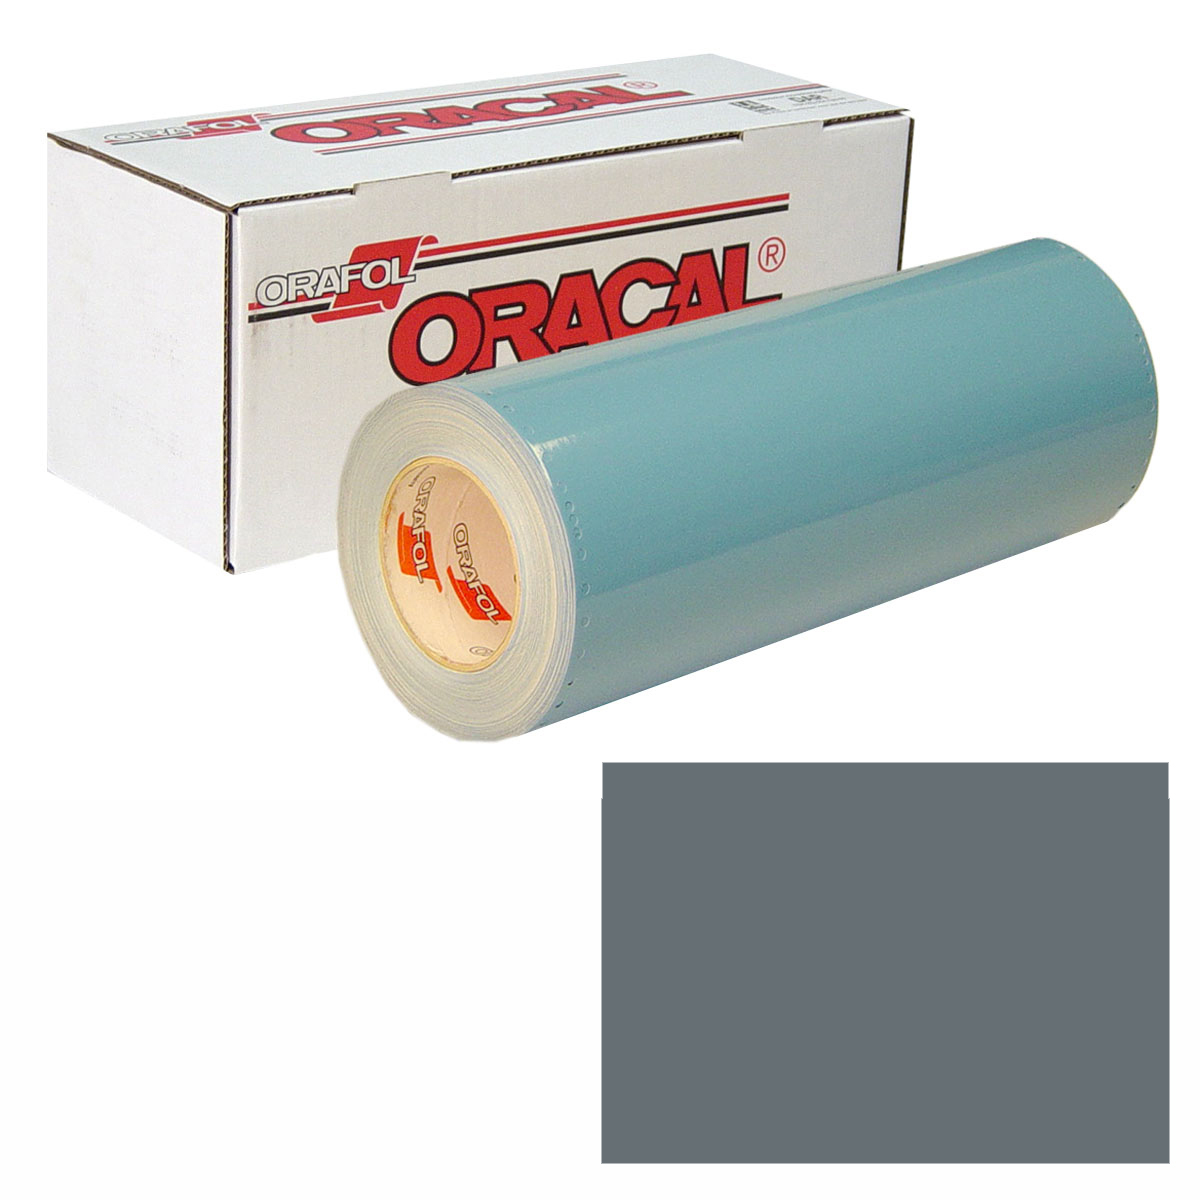 ORACAL 751 30in X 10yd 713 Iron Grey